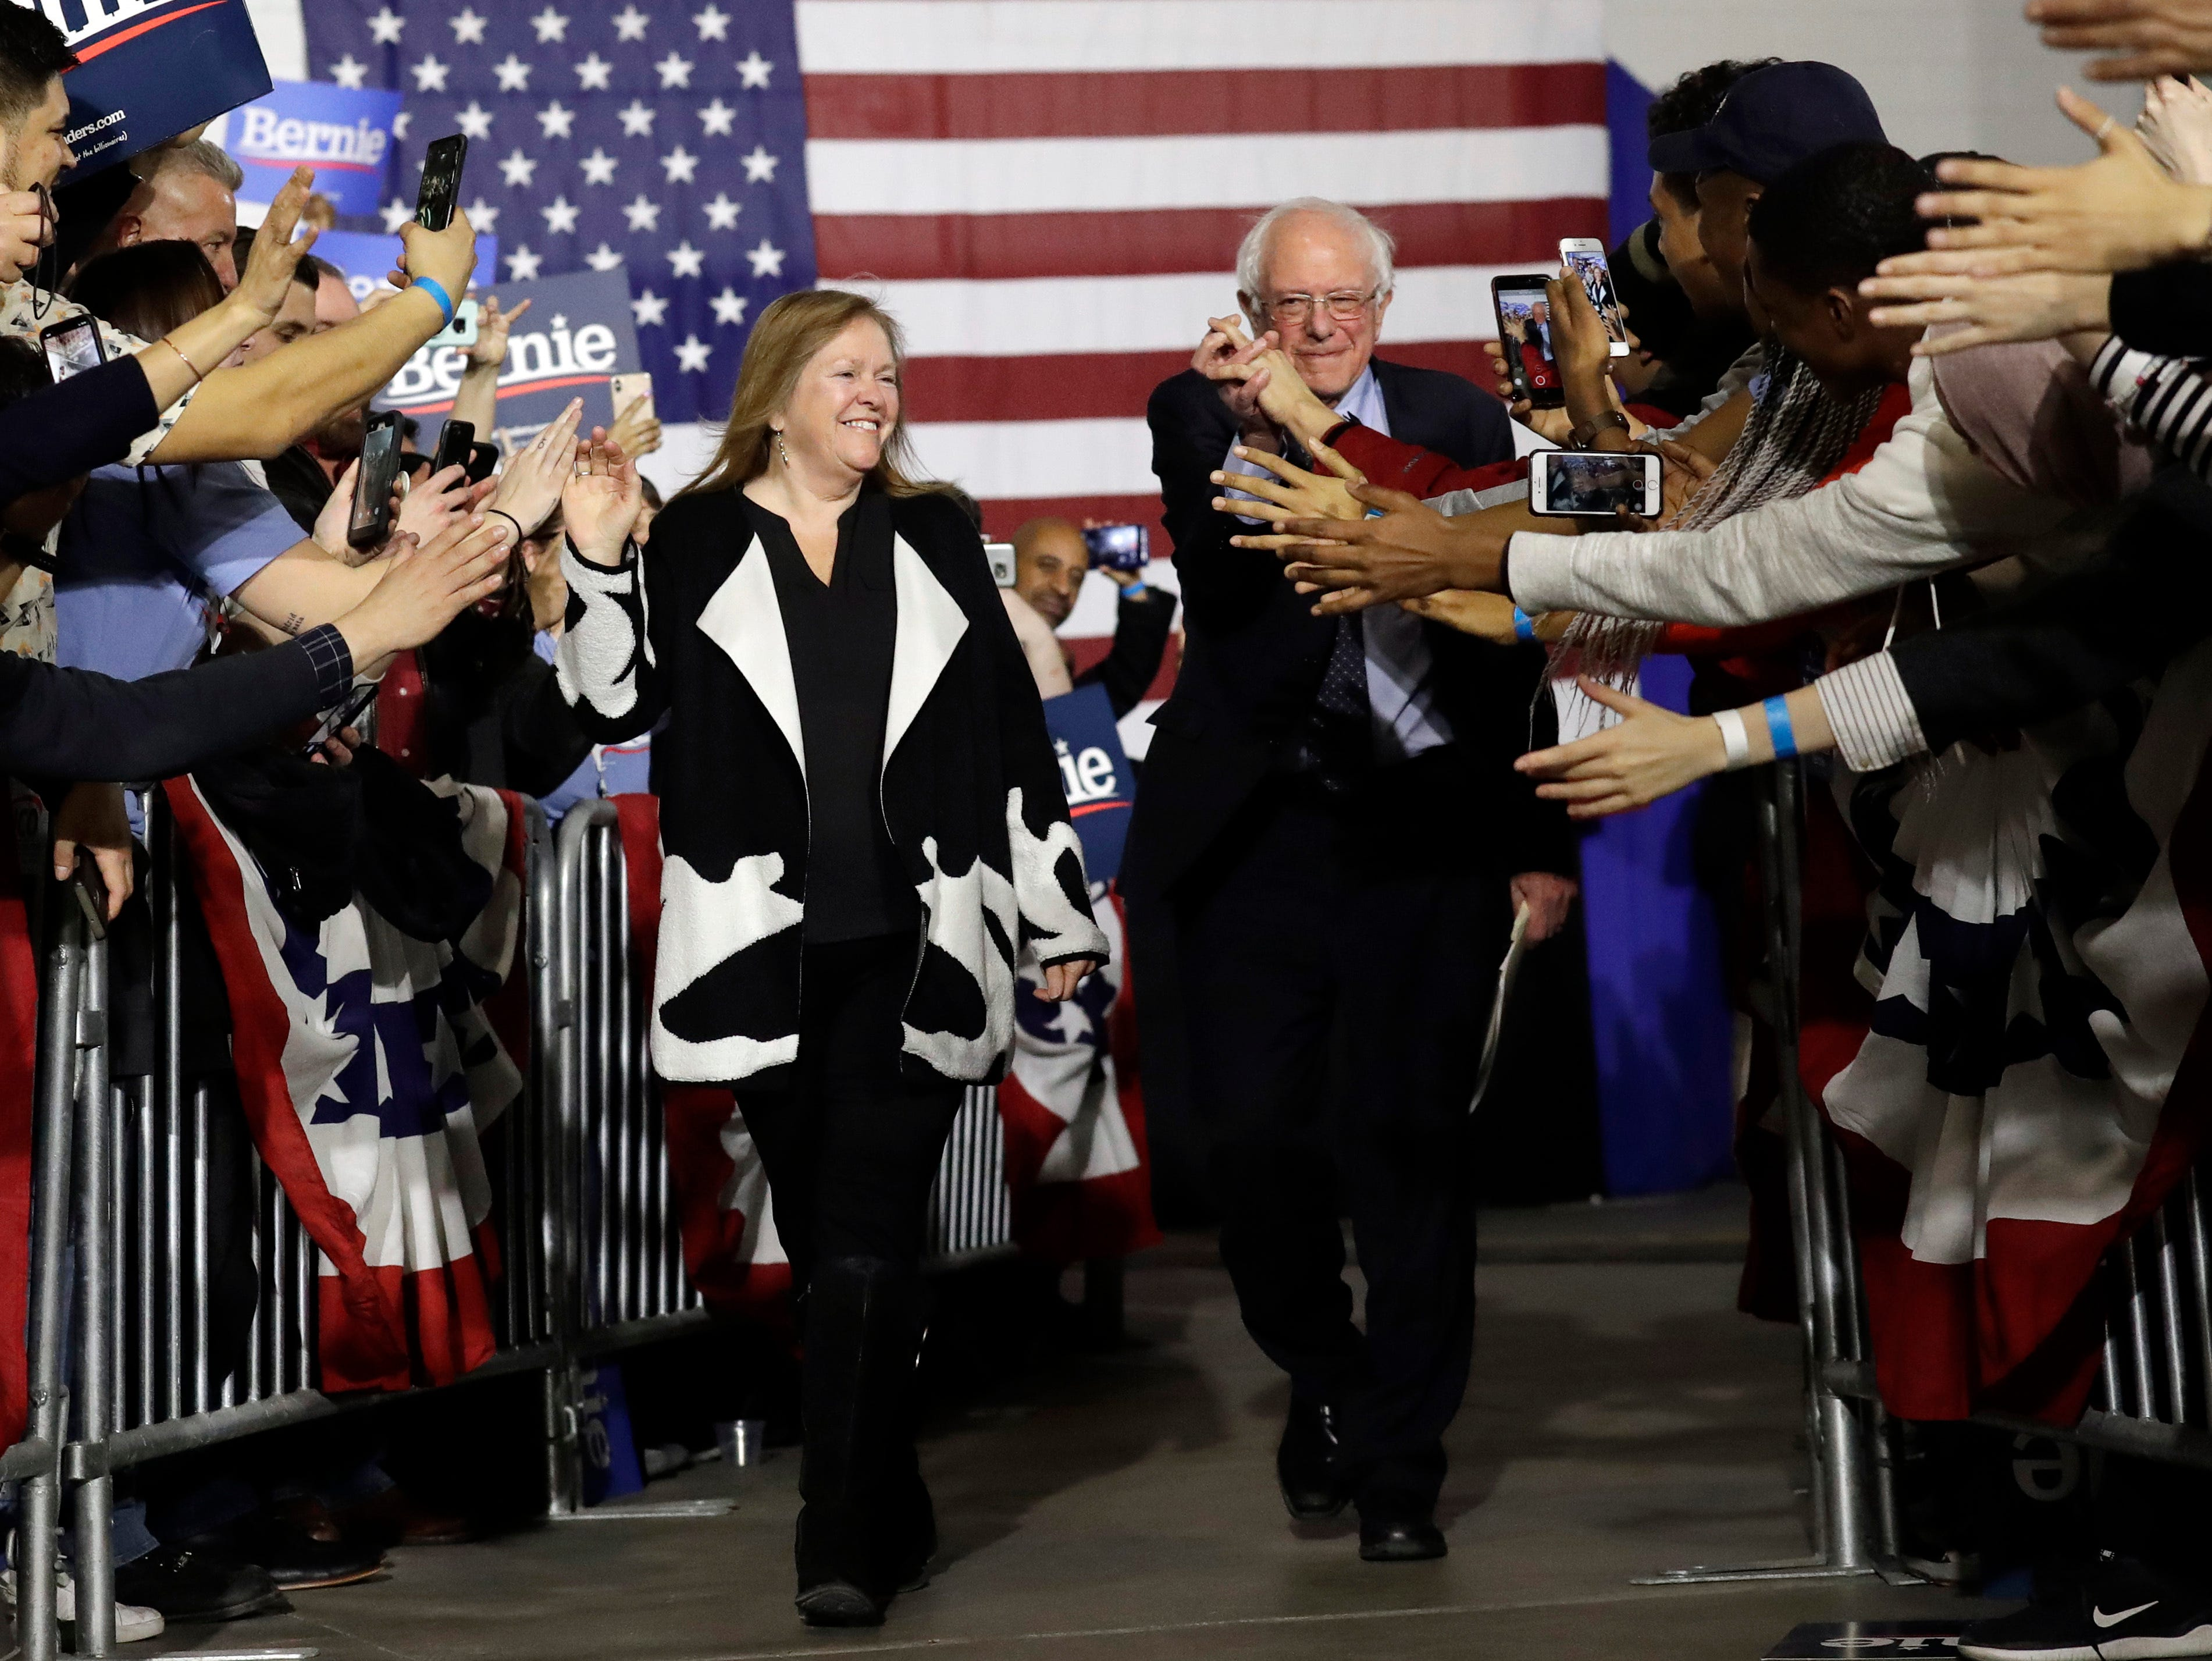 Sen. Bernie Sanders, I-Vt., right, and his wife Jane O'Meara Sanders, greet to supporters as they arrive arrive for Bernie Sanders' 2020 presidential campaign at Navy Pier in Chicago, Sunday, March 3, 2019. Over the next several weeks, Sanders will travel to Iowa, New Hampshire, South Carolina, Nevada, and California. He will then return to Burlington, Vermont, for the official launch of his campaign.